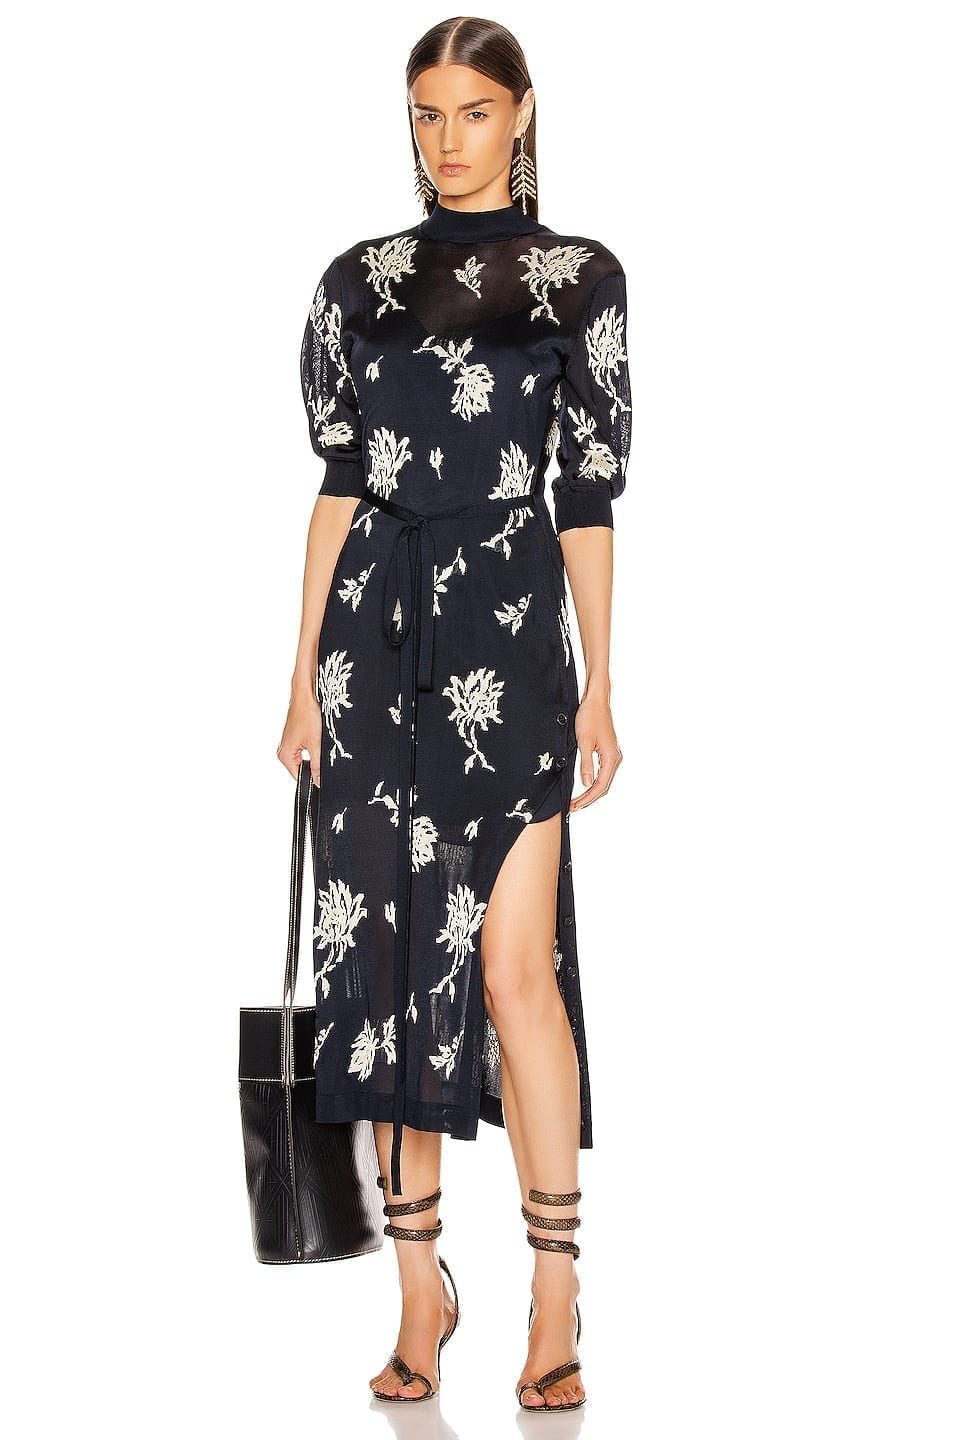 CHLOE Floral Tie Dress